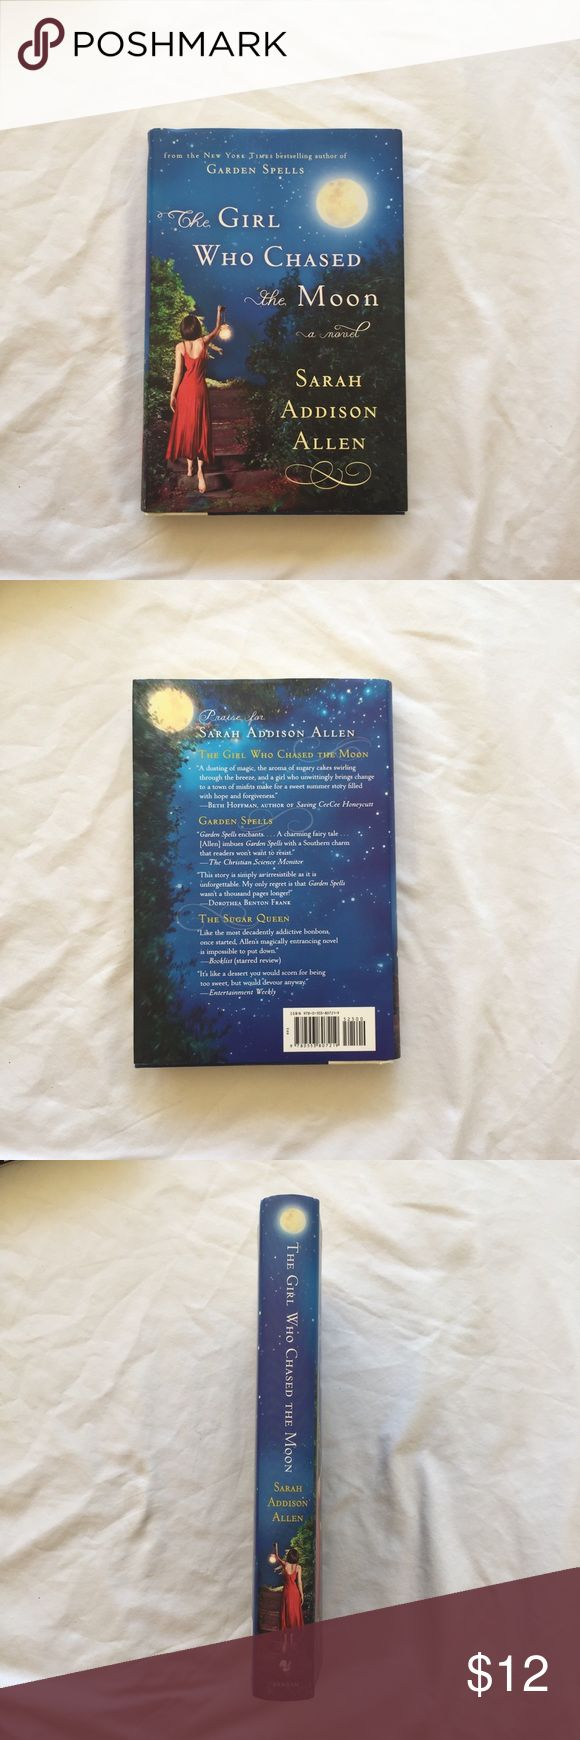 The Girl Who Chased the Moon - Sarah Addison Allen Brand new hardcover novel in perfect condition; never been read! Other